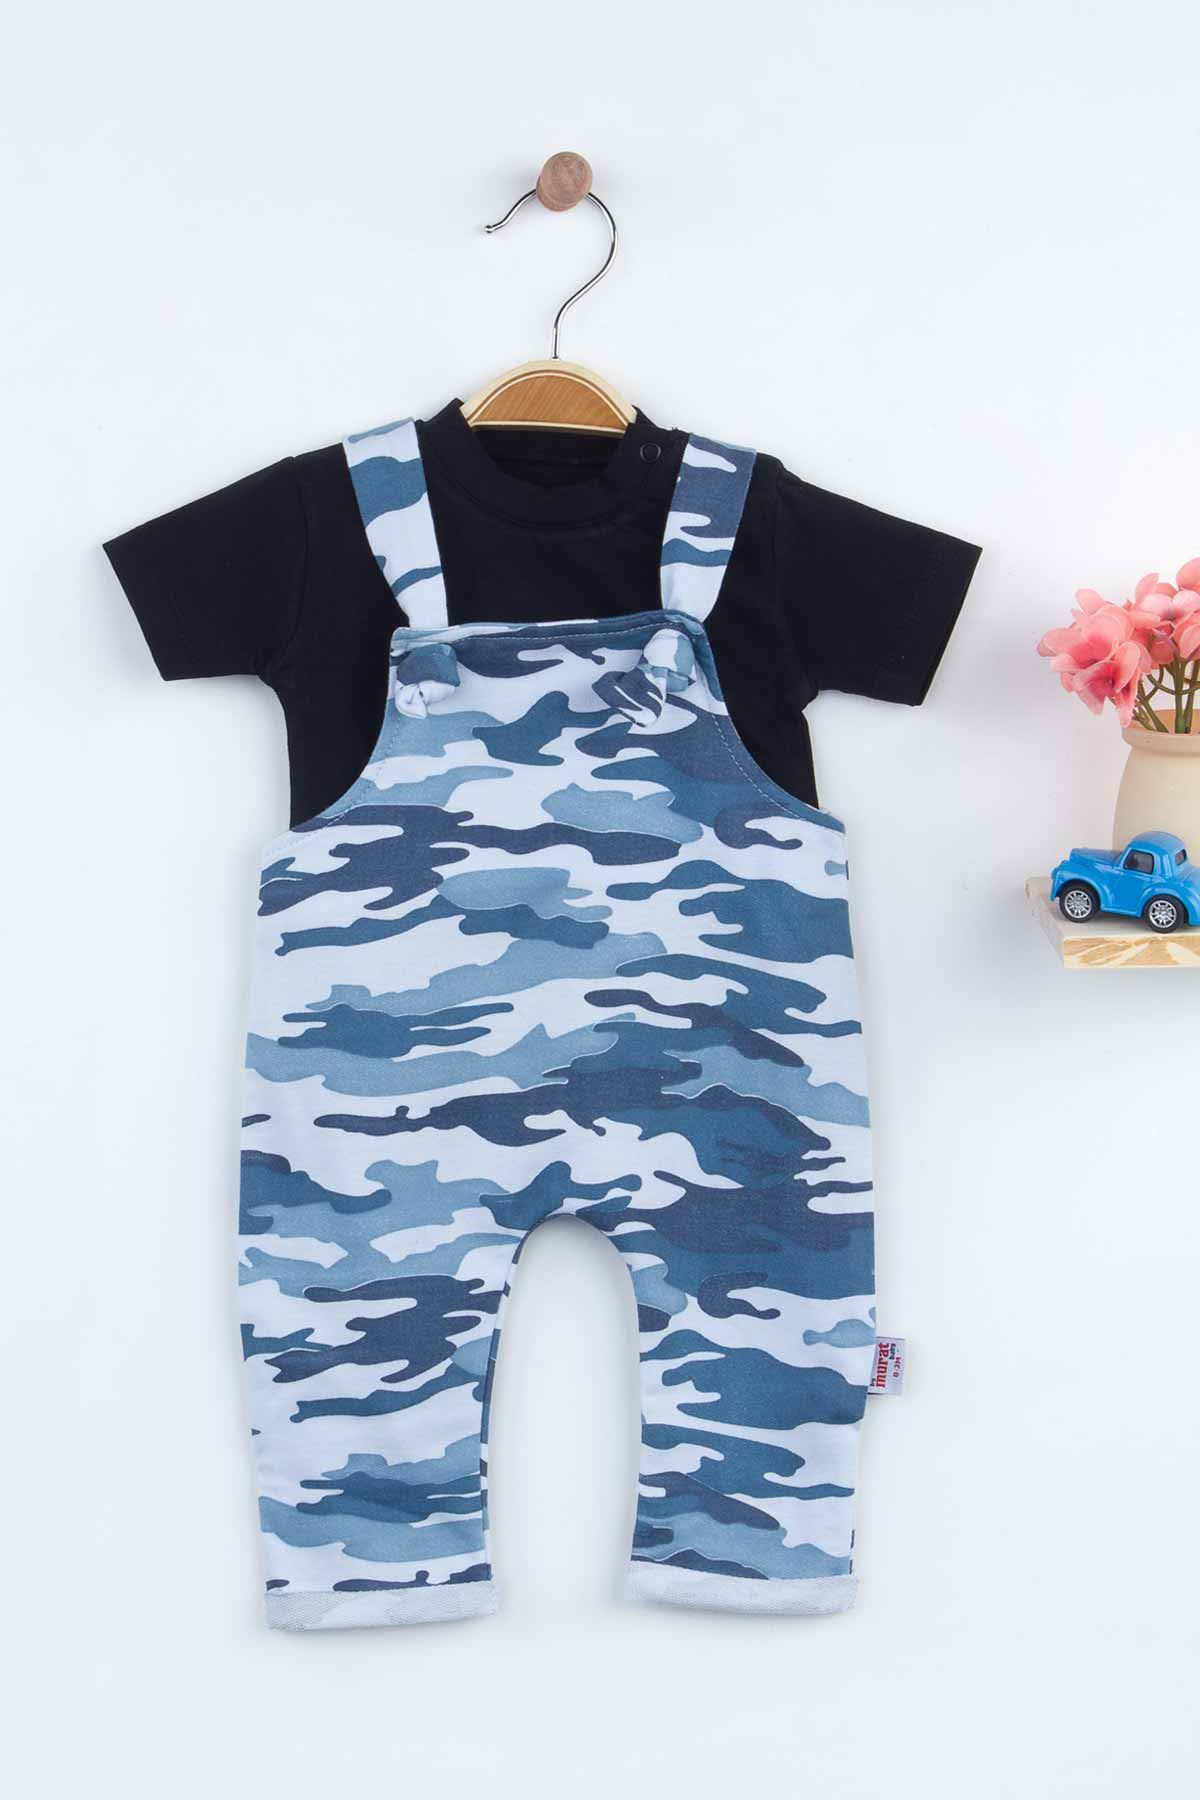 Blue camouflage Baby Boy Rompers Fashion 2021 Summer New Season Style Babies Clothes Outfit Cotton Comfortable Underwear for Boys Baby